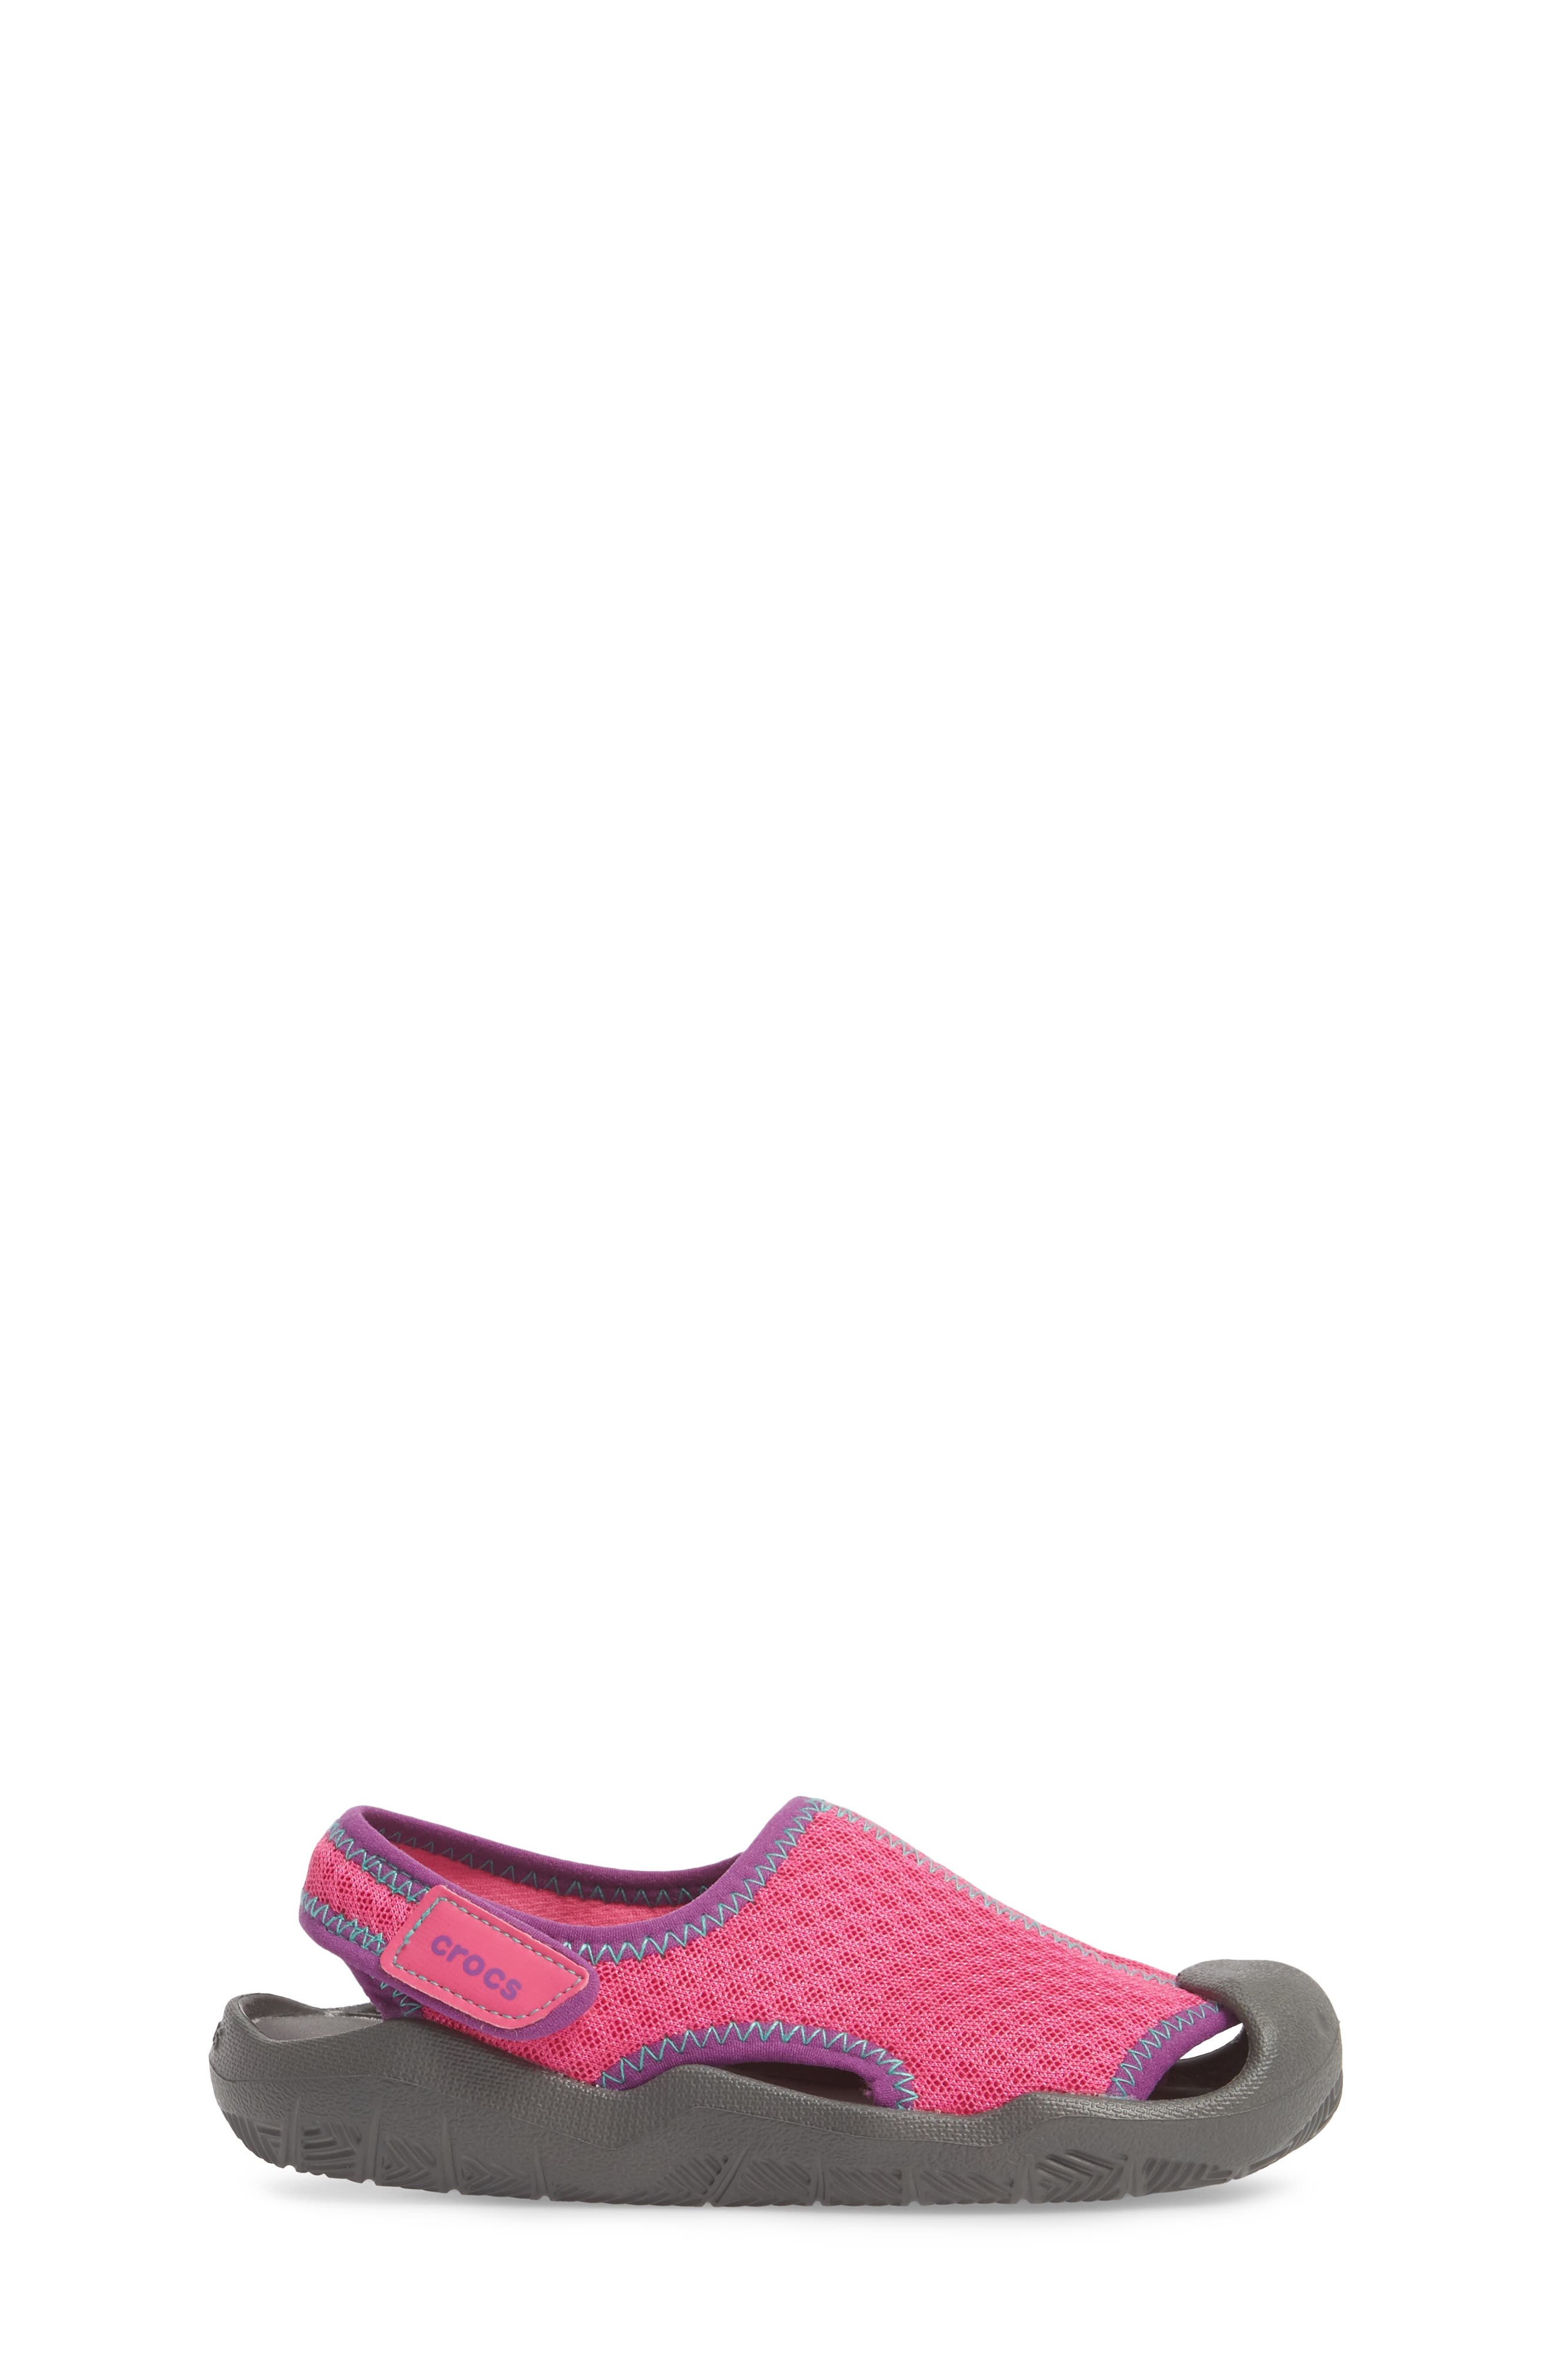 Swiftwater Sandal,                             Alternate thumbnail 3, color,                             Pink